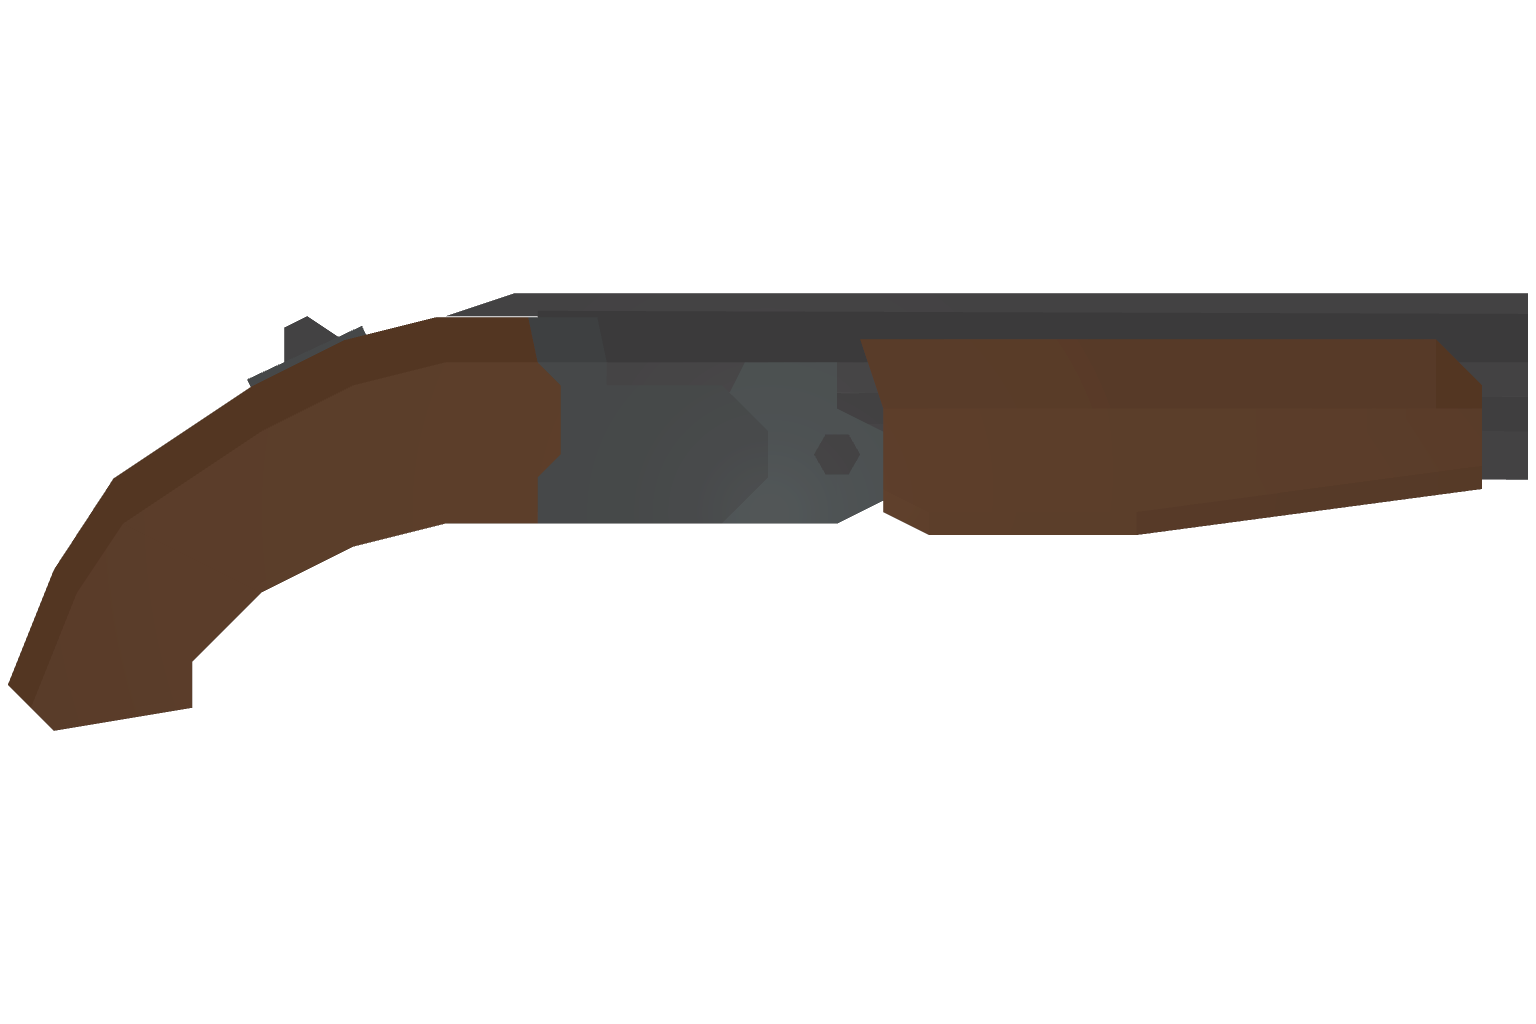 Unturned Uncreated Warfare Mods & All ID List + Attachments - Neutral Weapons - C628764